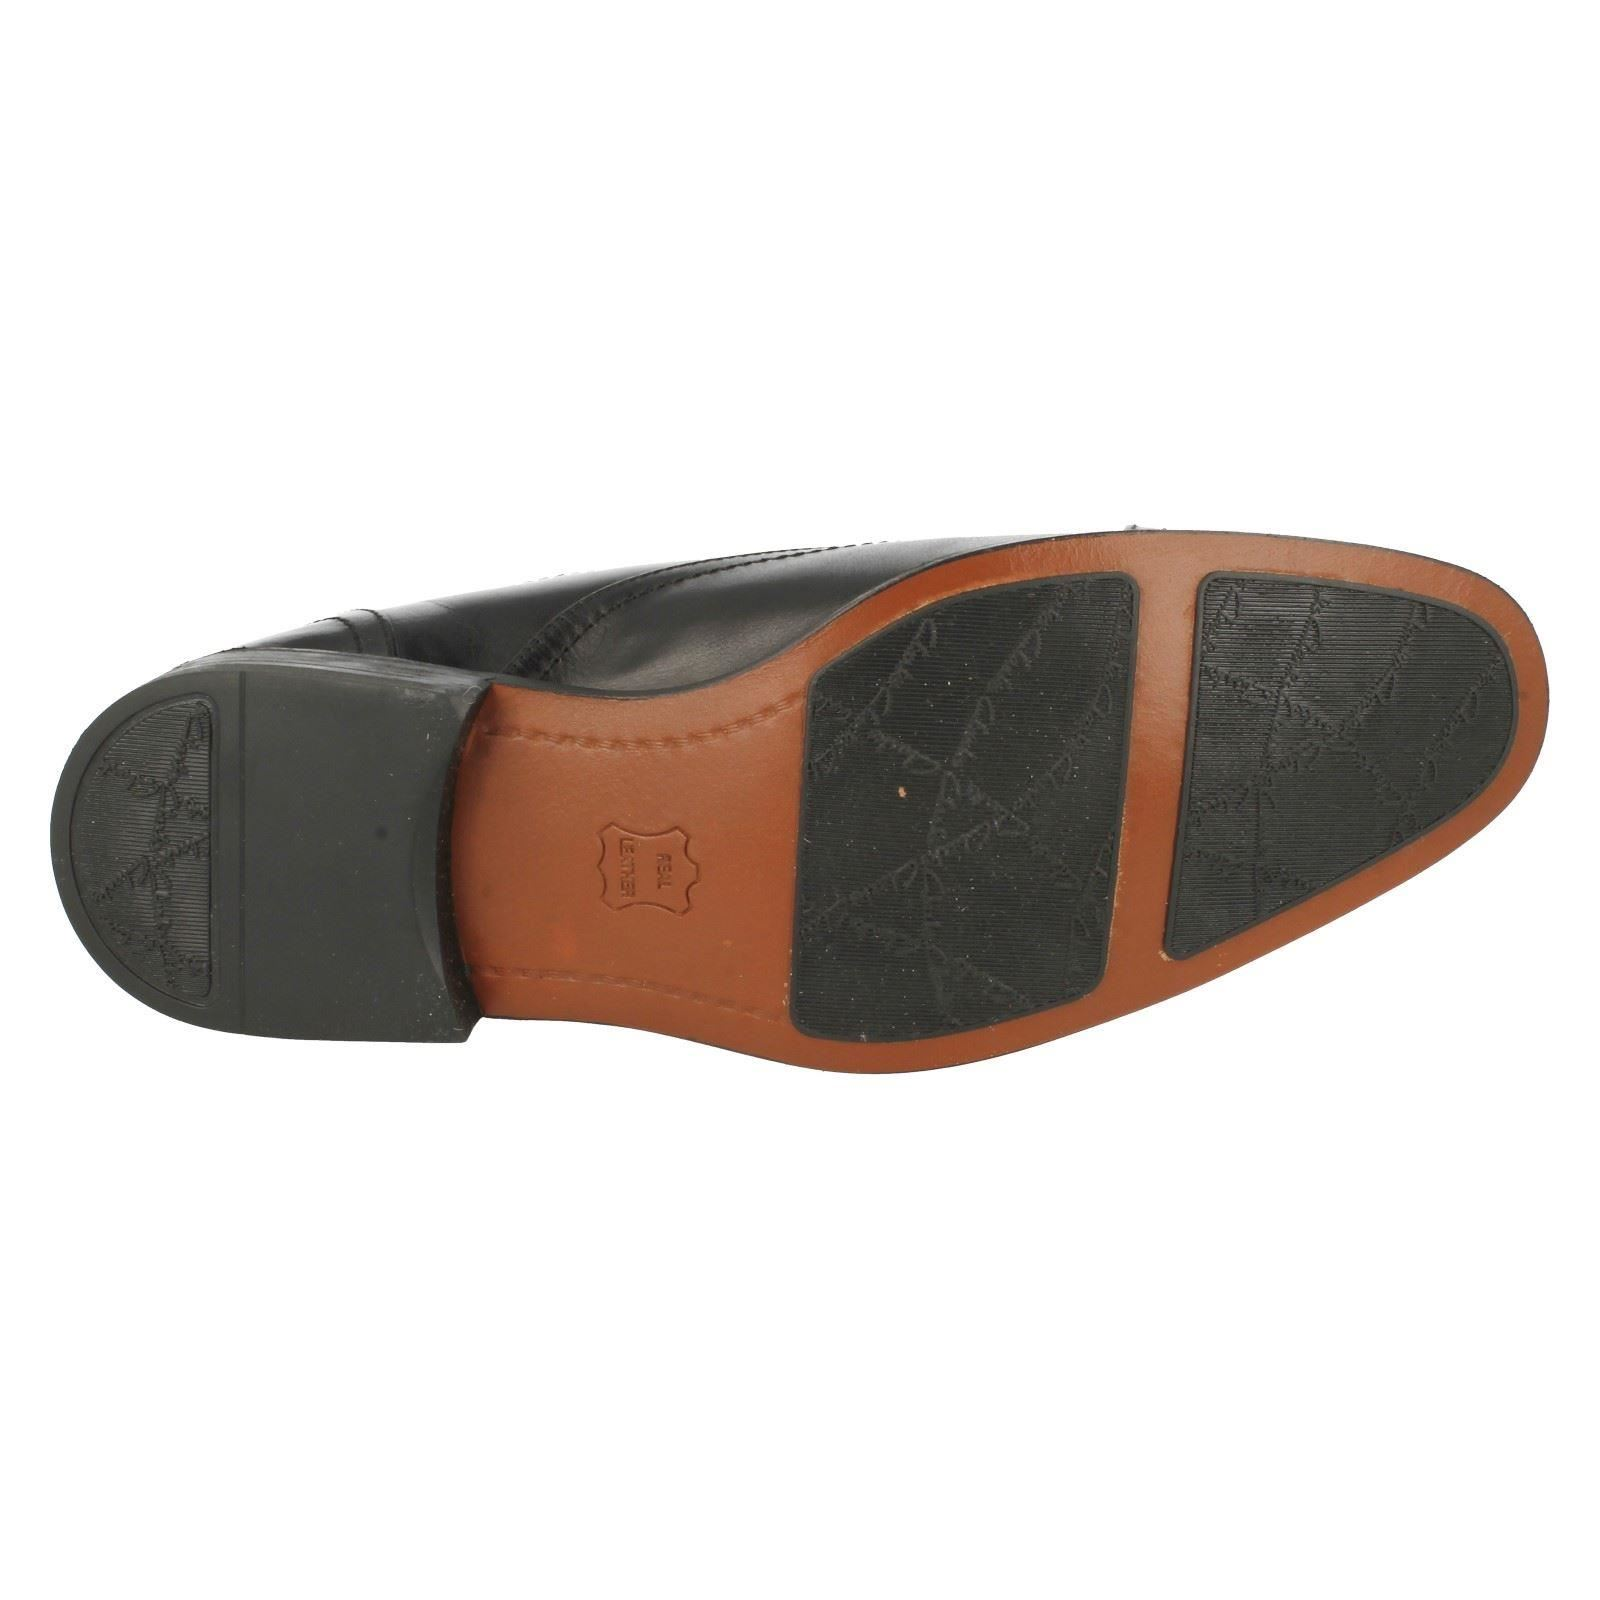 Mens Clarks Formal Schuhes 'Bakra 'Bakra Schuhes Lift' a869d1